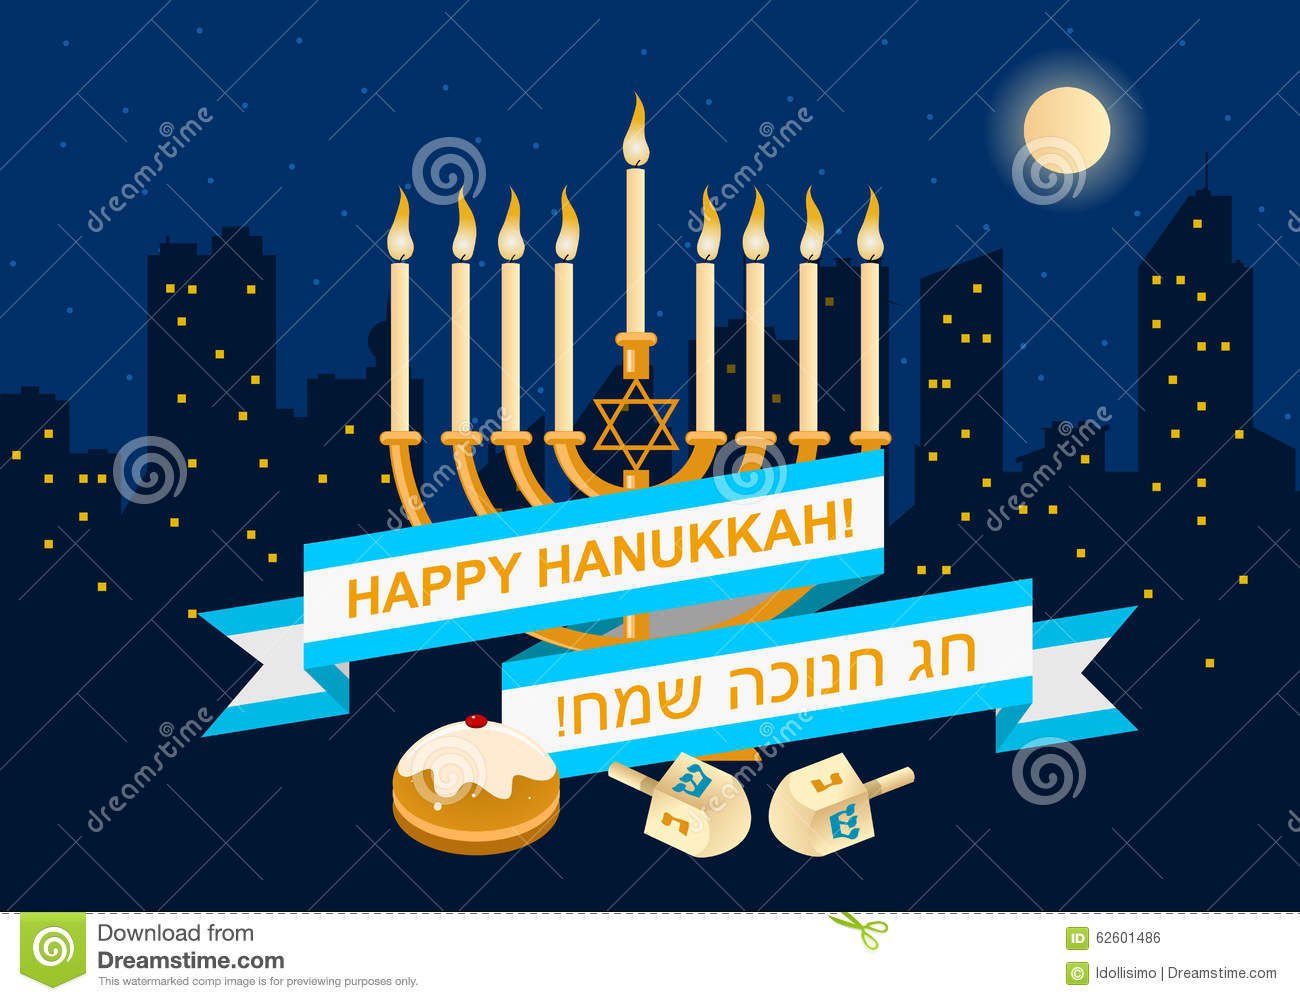 Happy Hanukkah Design Stock Vector Illustration Of Yellow 62601486